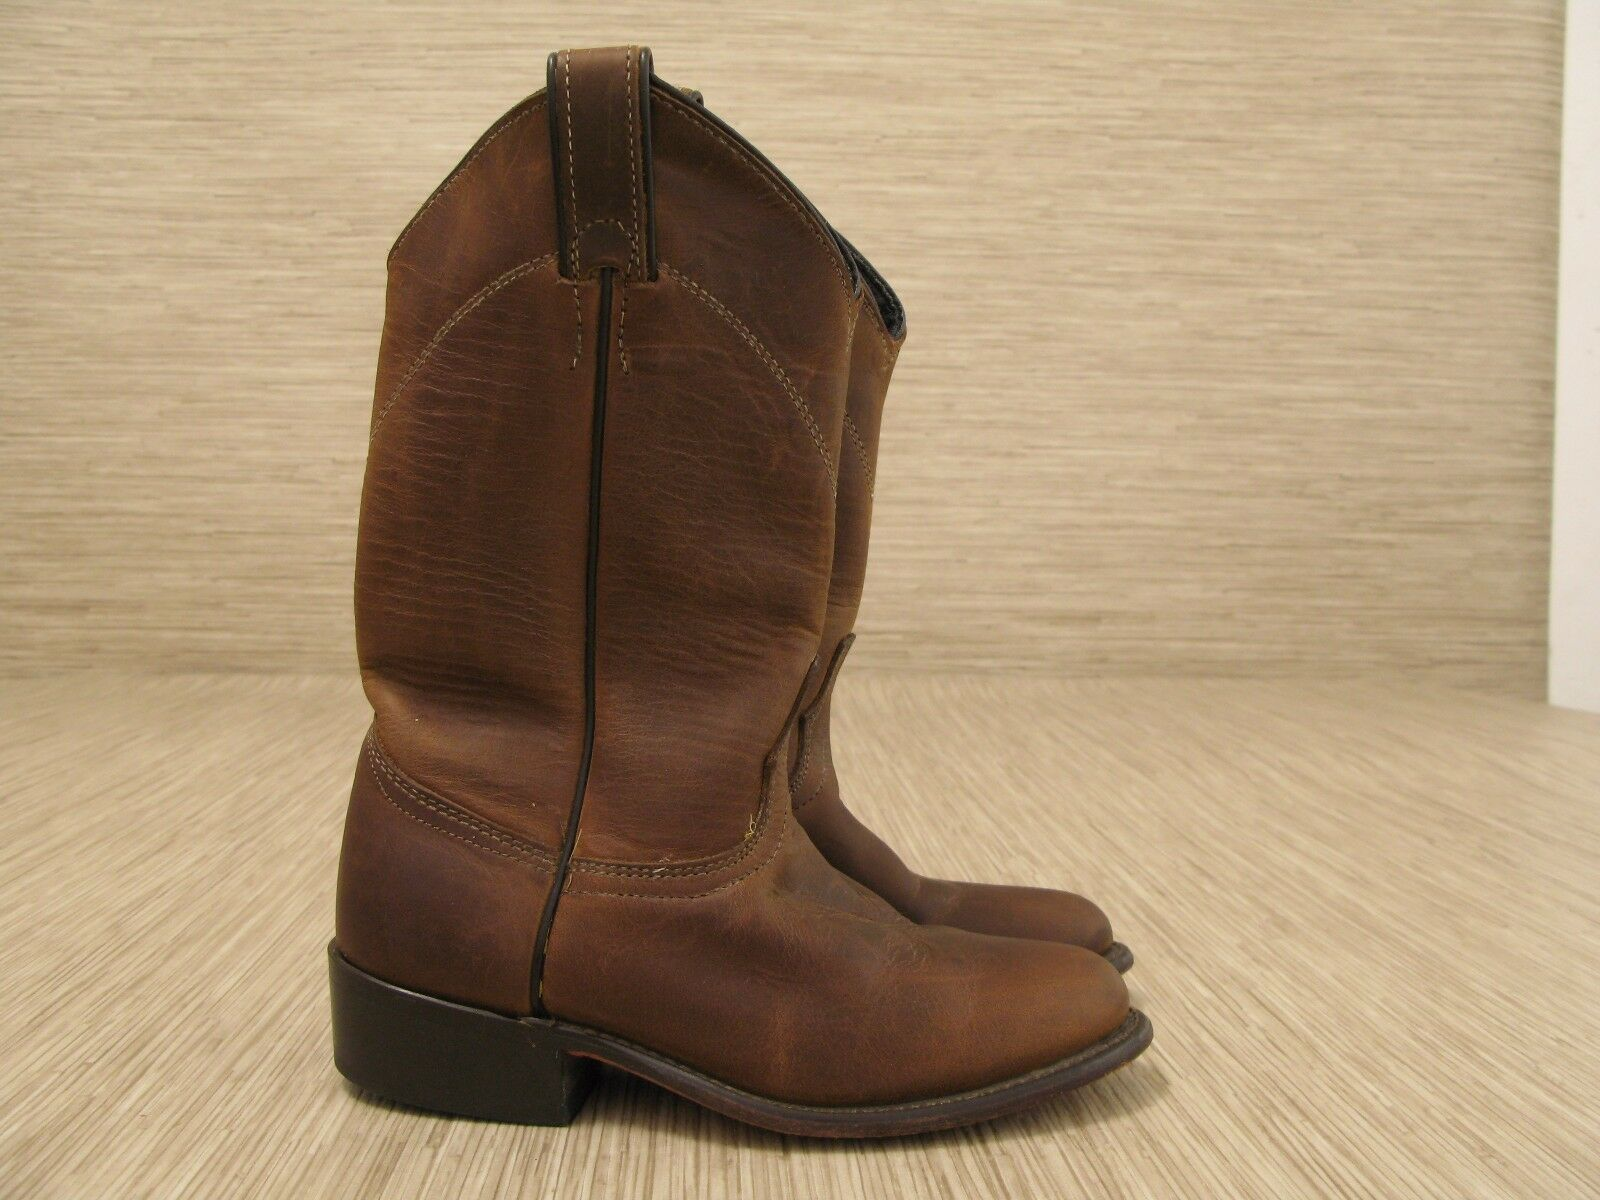 Laredo Brown Leather Cowboy Boots Women's Size US 5 M Slip-On Made in the USA